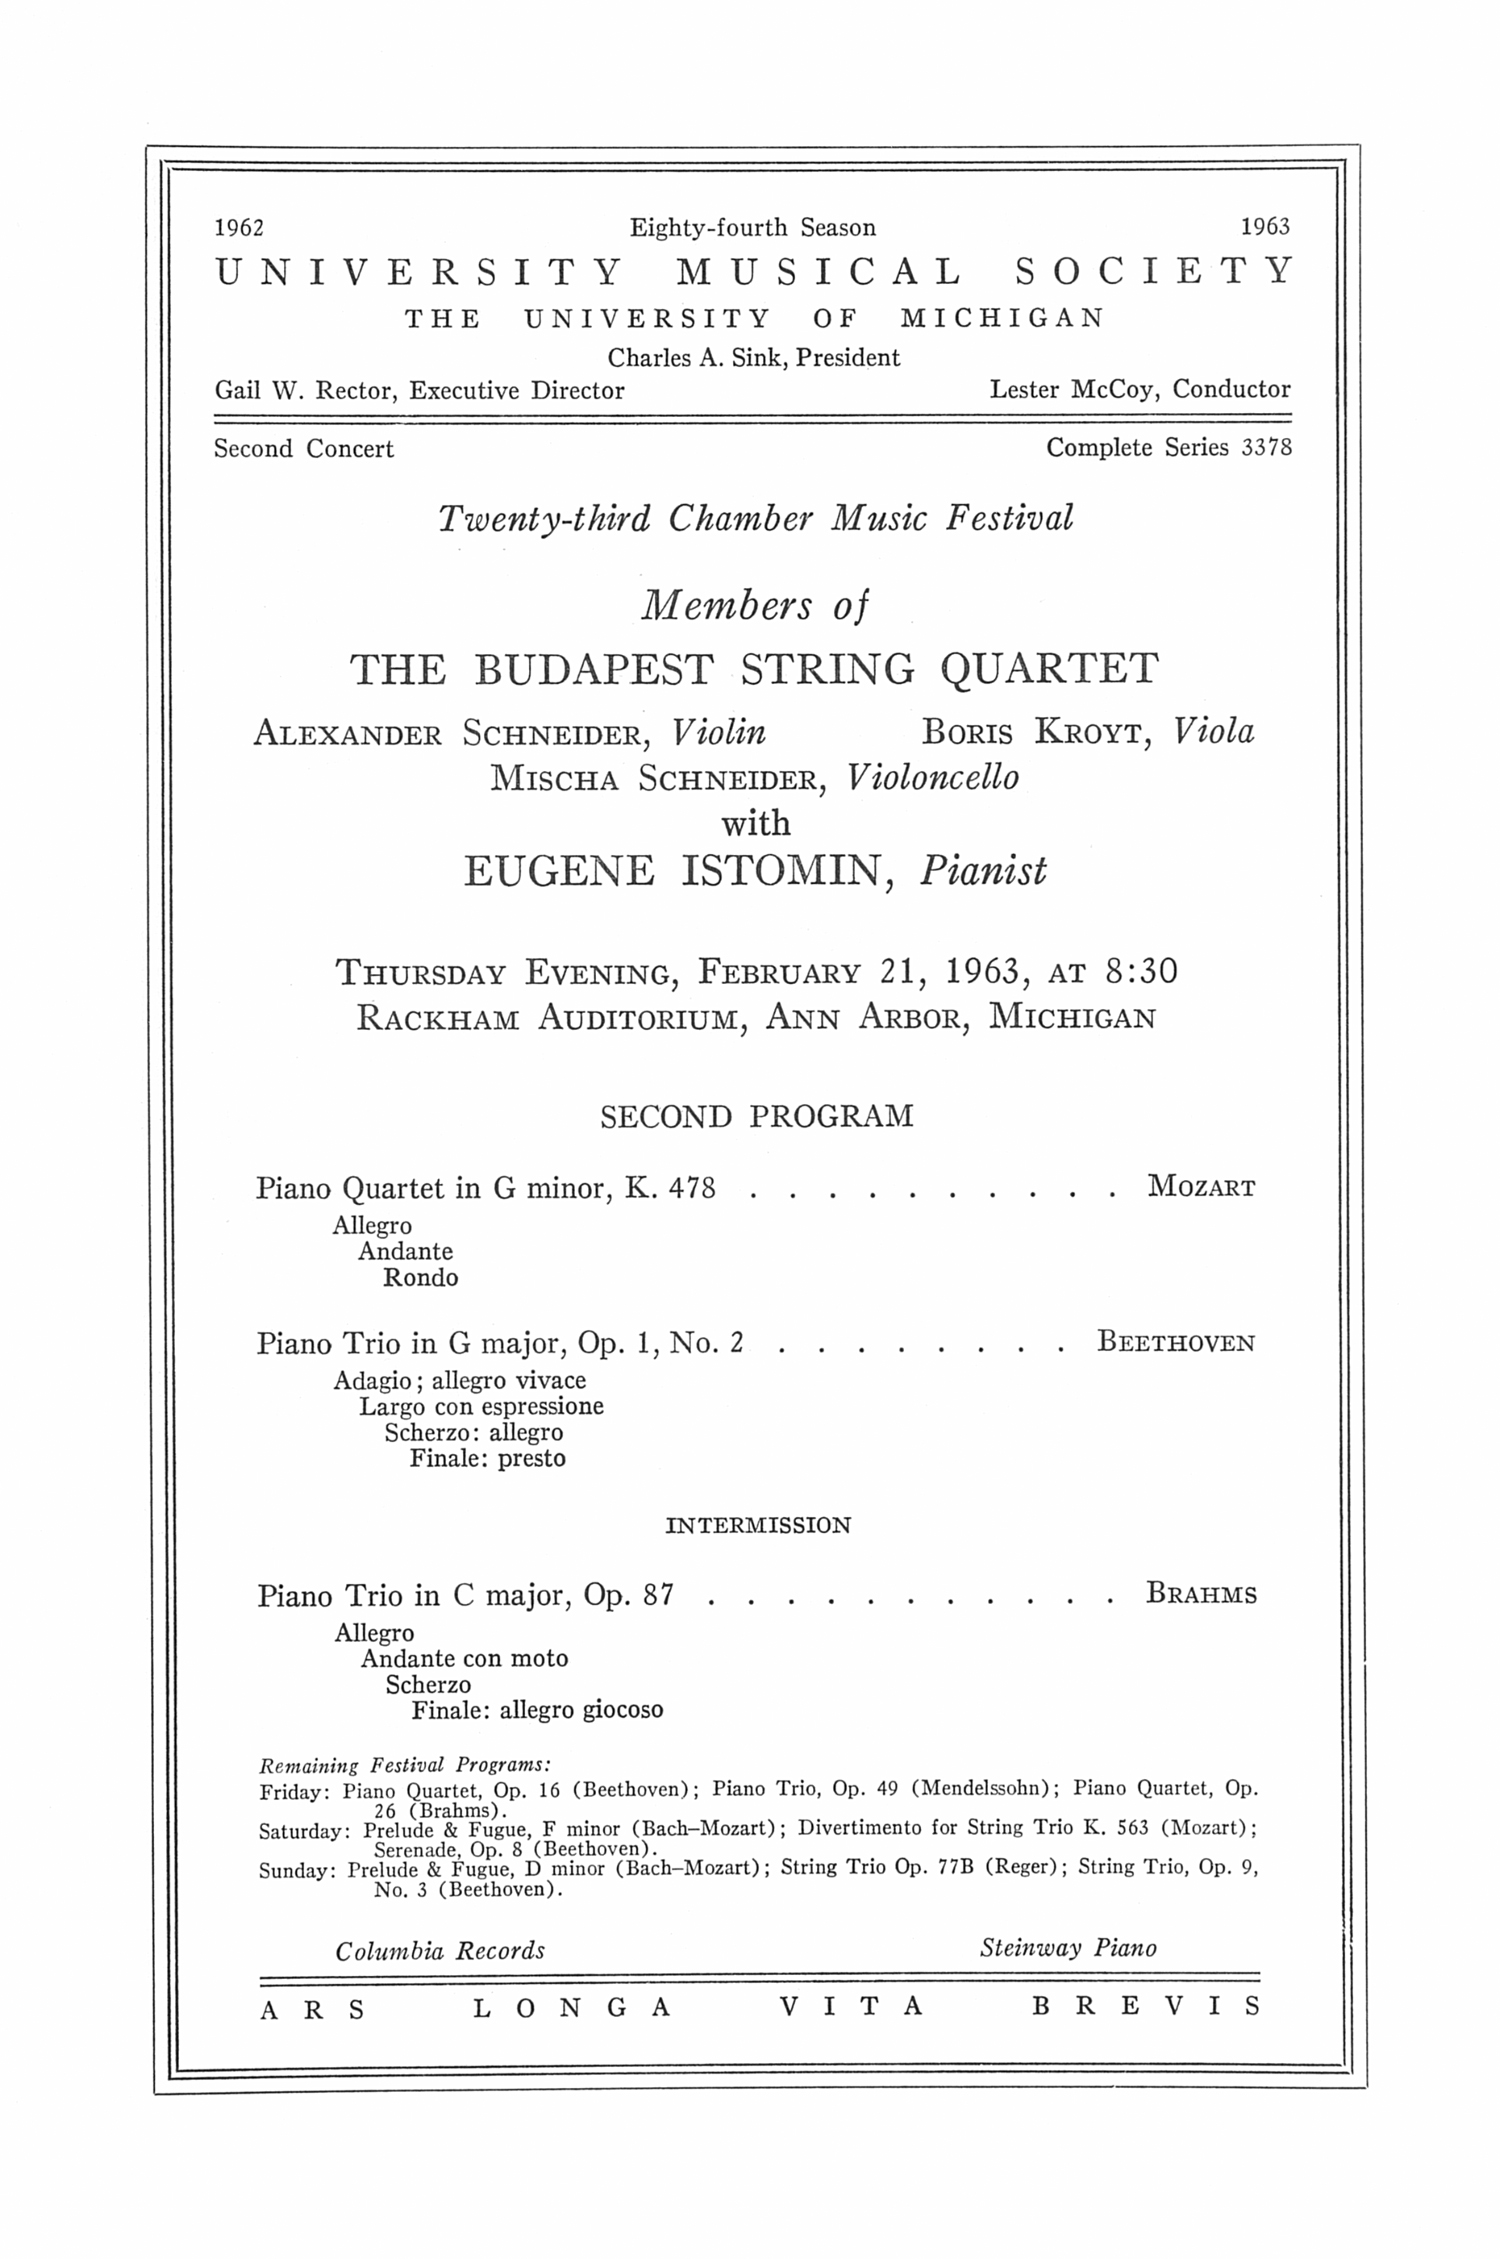 UMS Concert Program, February 21, 1963: The Budapest String Quartet -- Eugene Istomin image